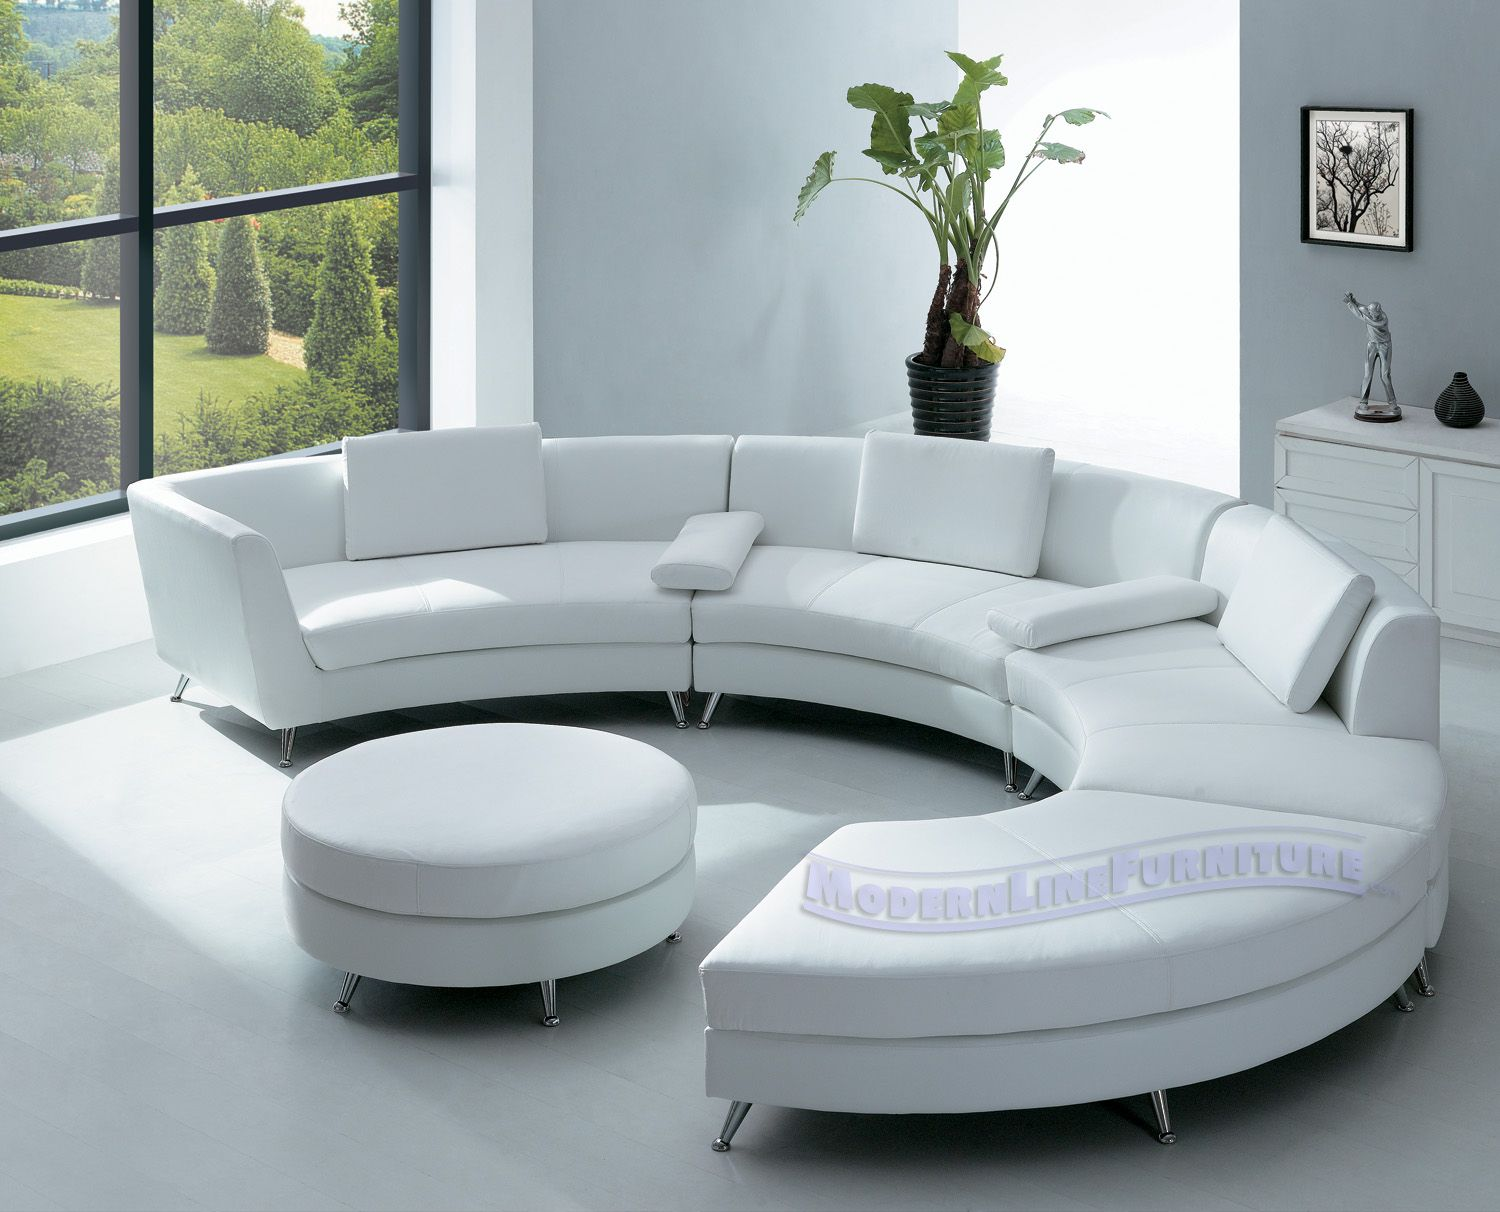 best  round sofa ideas on pinterest  contemporary sofa  - contemporary interior design  contemporary sofa interior design photos